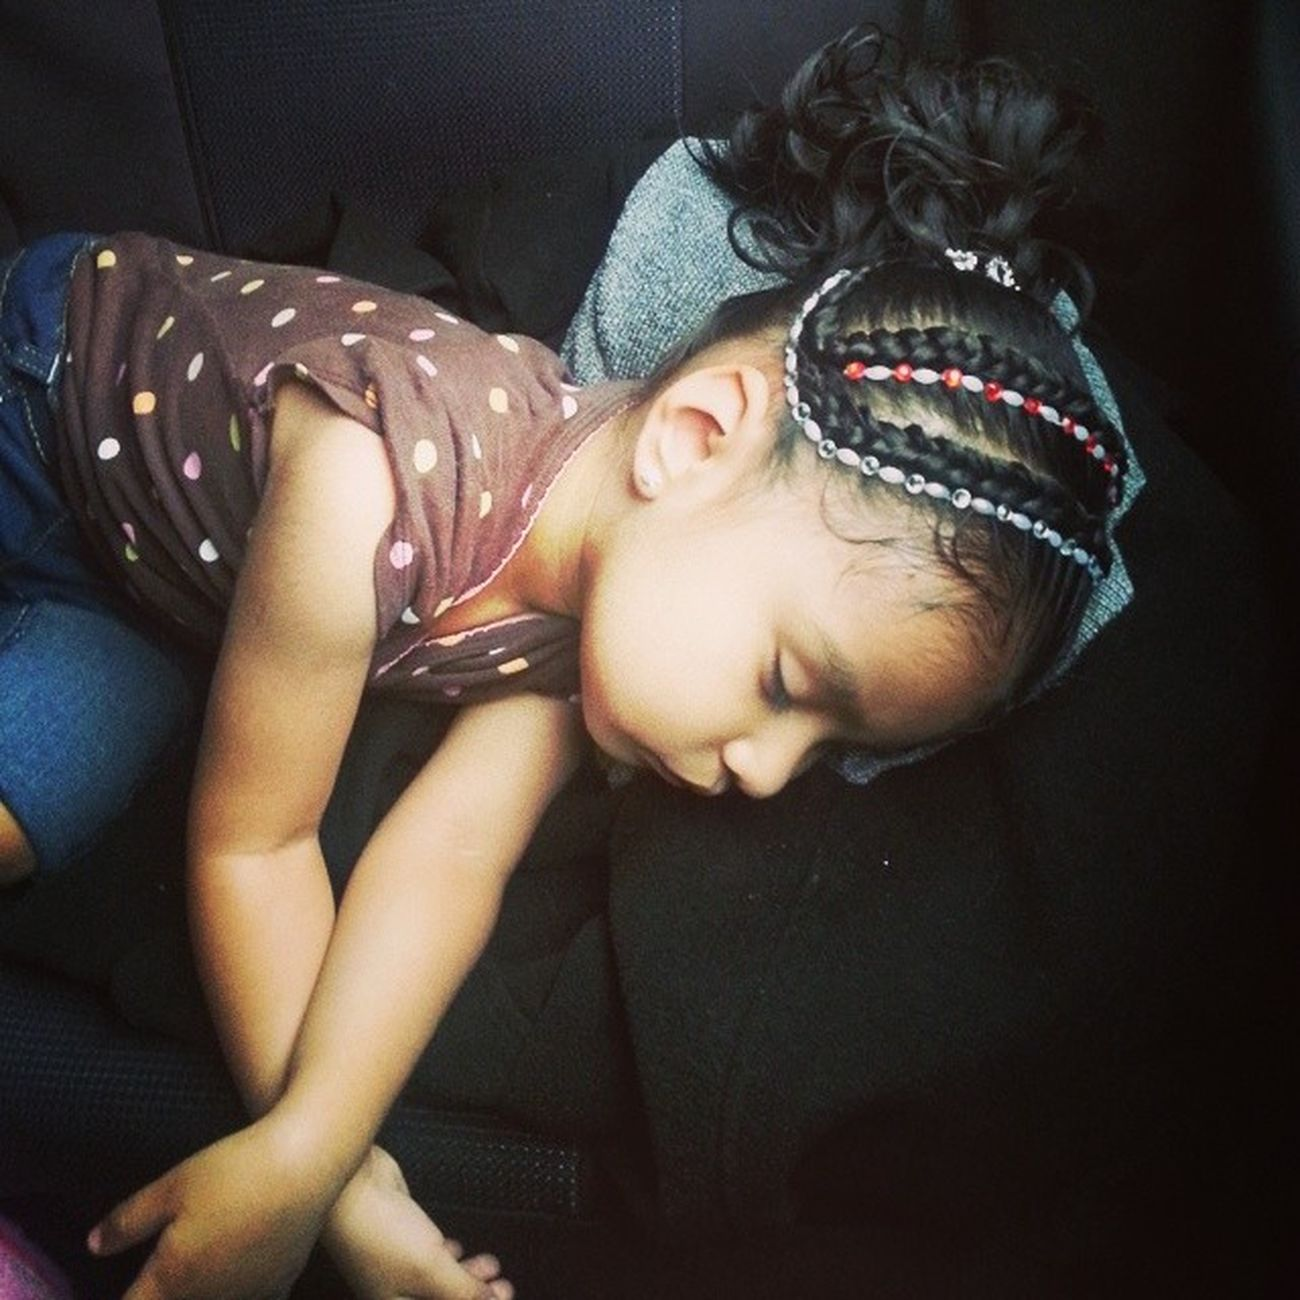 my baby asleep in the back seat TooCute CarRides Newhairdo Loveher